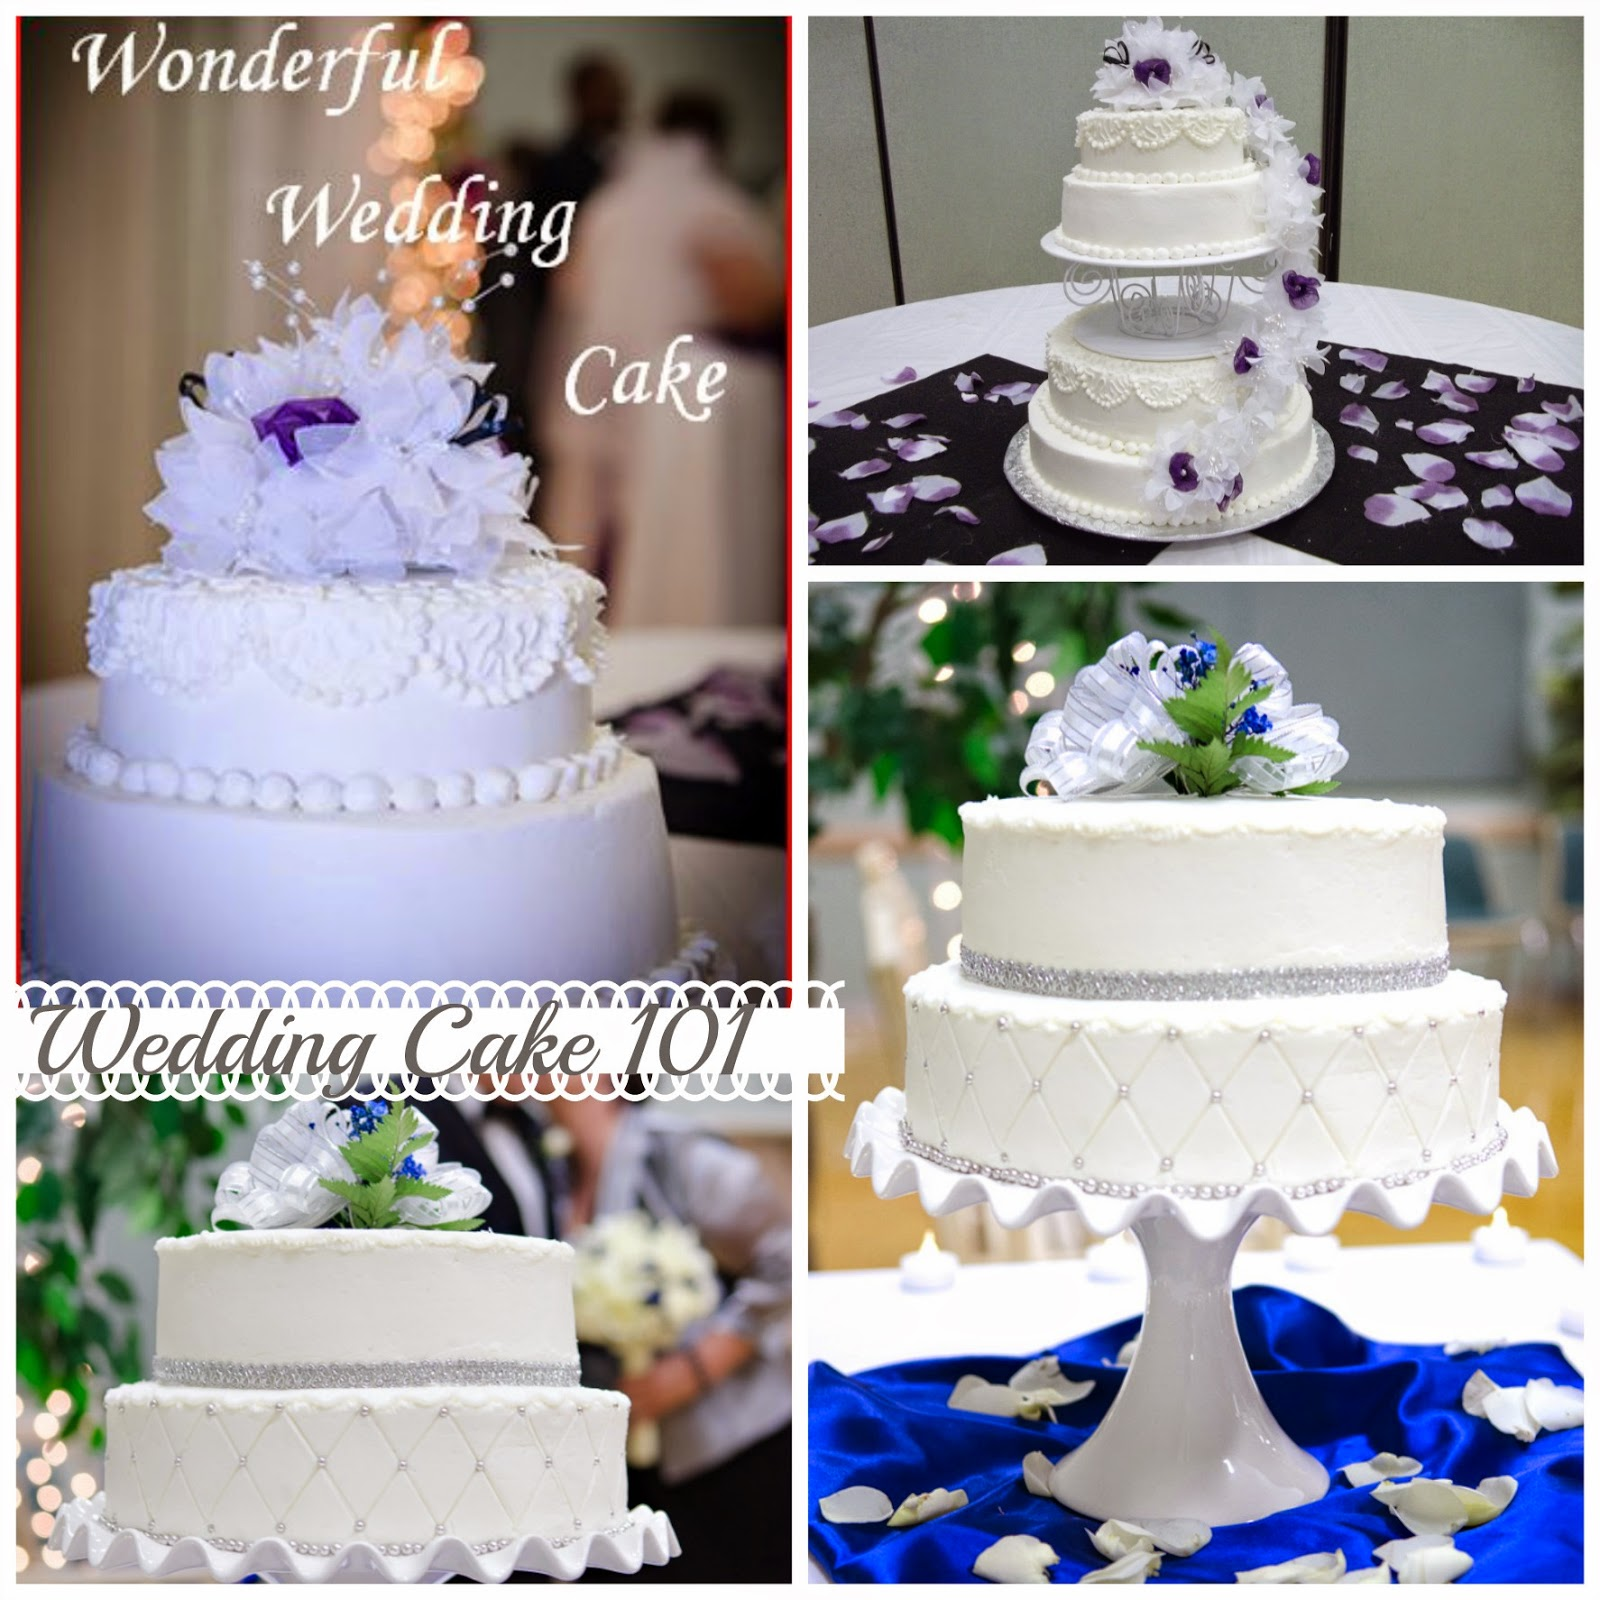 Wedding Cake 101 An Introduction To Wedding Cakes: Scrumptilicious 4 You: Wedding Cake 101: The Basics Day 2